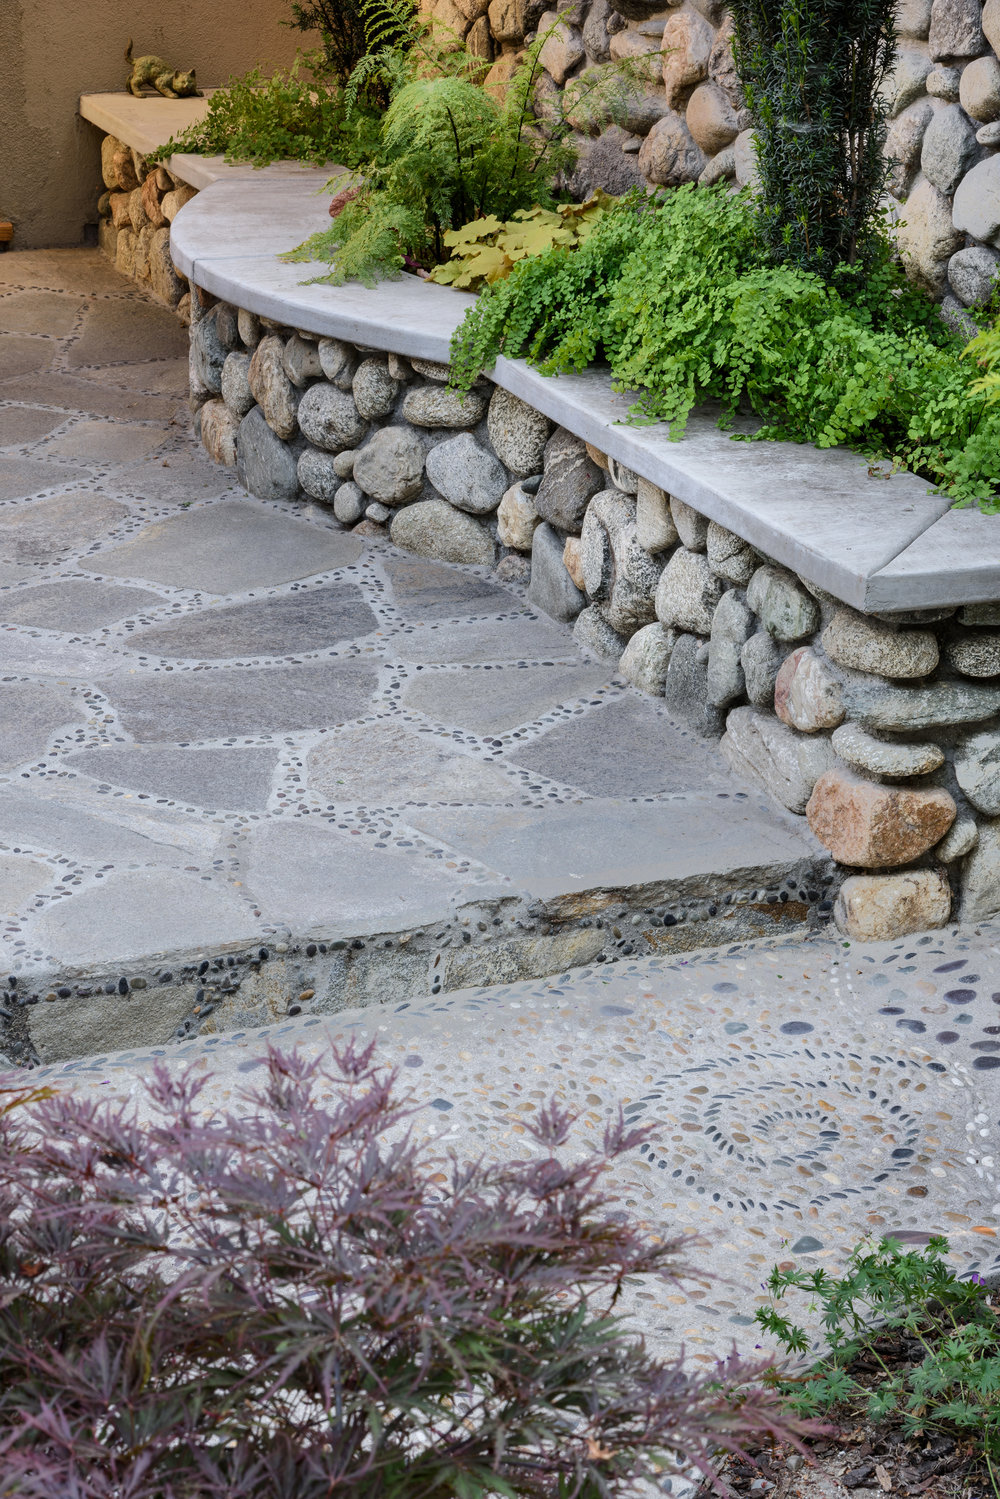 Claremont-Woodland-Garden-Path-Pebble-Art-Stone-Planter-Seat-Wall.jpg